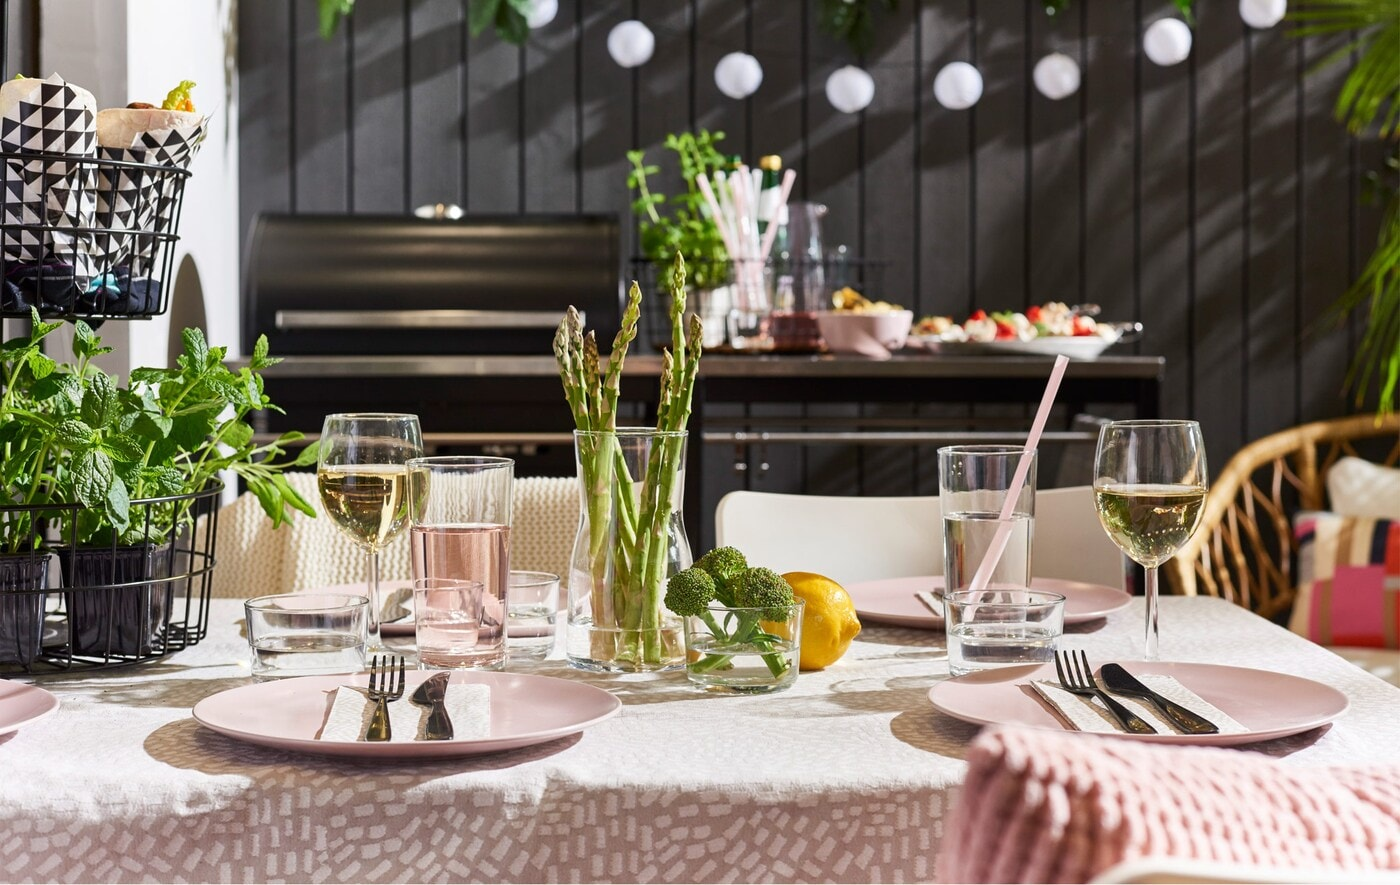 A table set for lunch outside, in front of a barbeque area, with a SOLVINDEN lighting chain in the background.